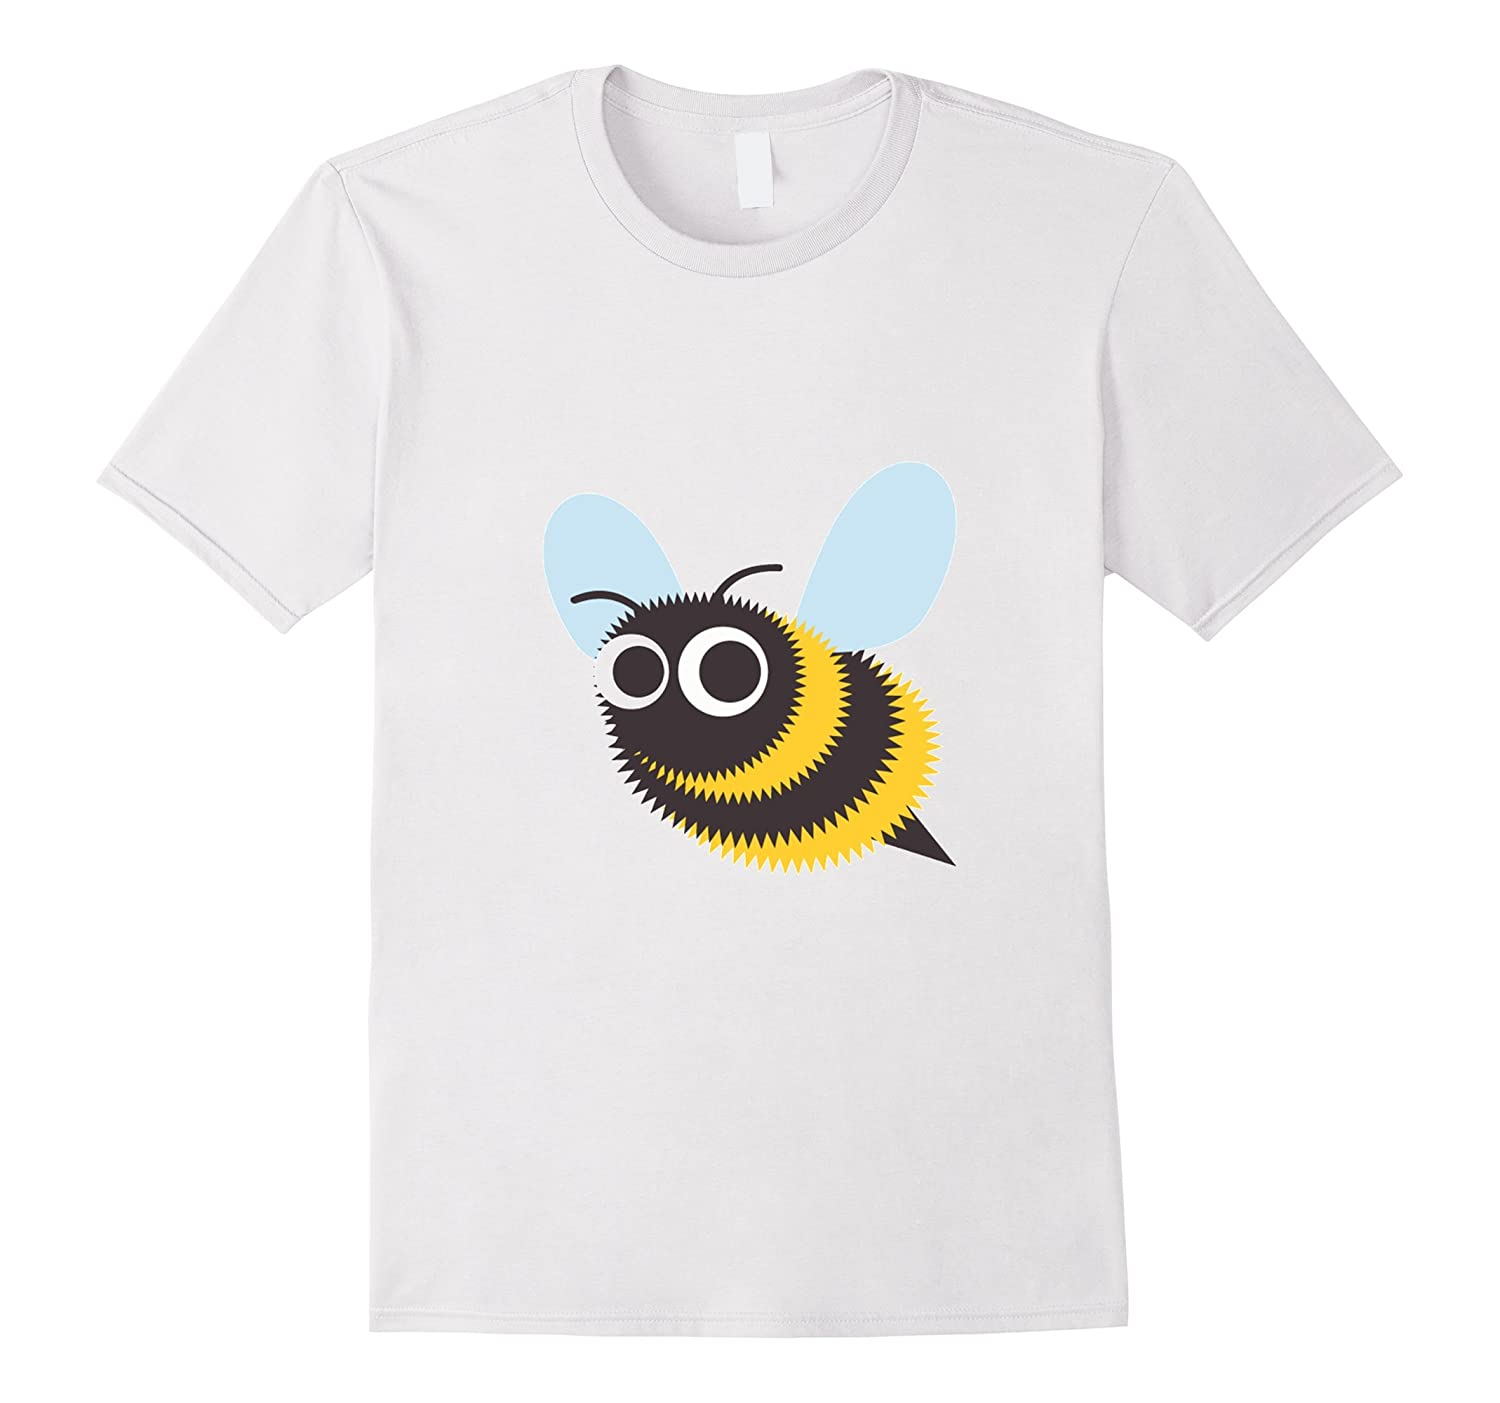 Bee Emoji T-Shirt Honeybee Bumblebee-CL